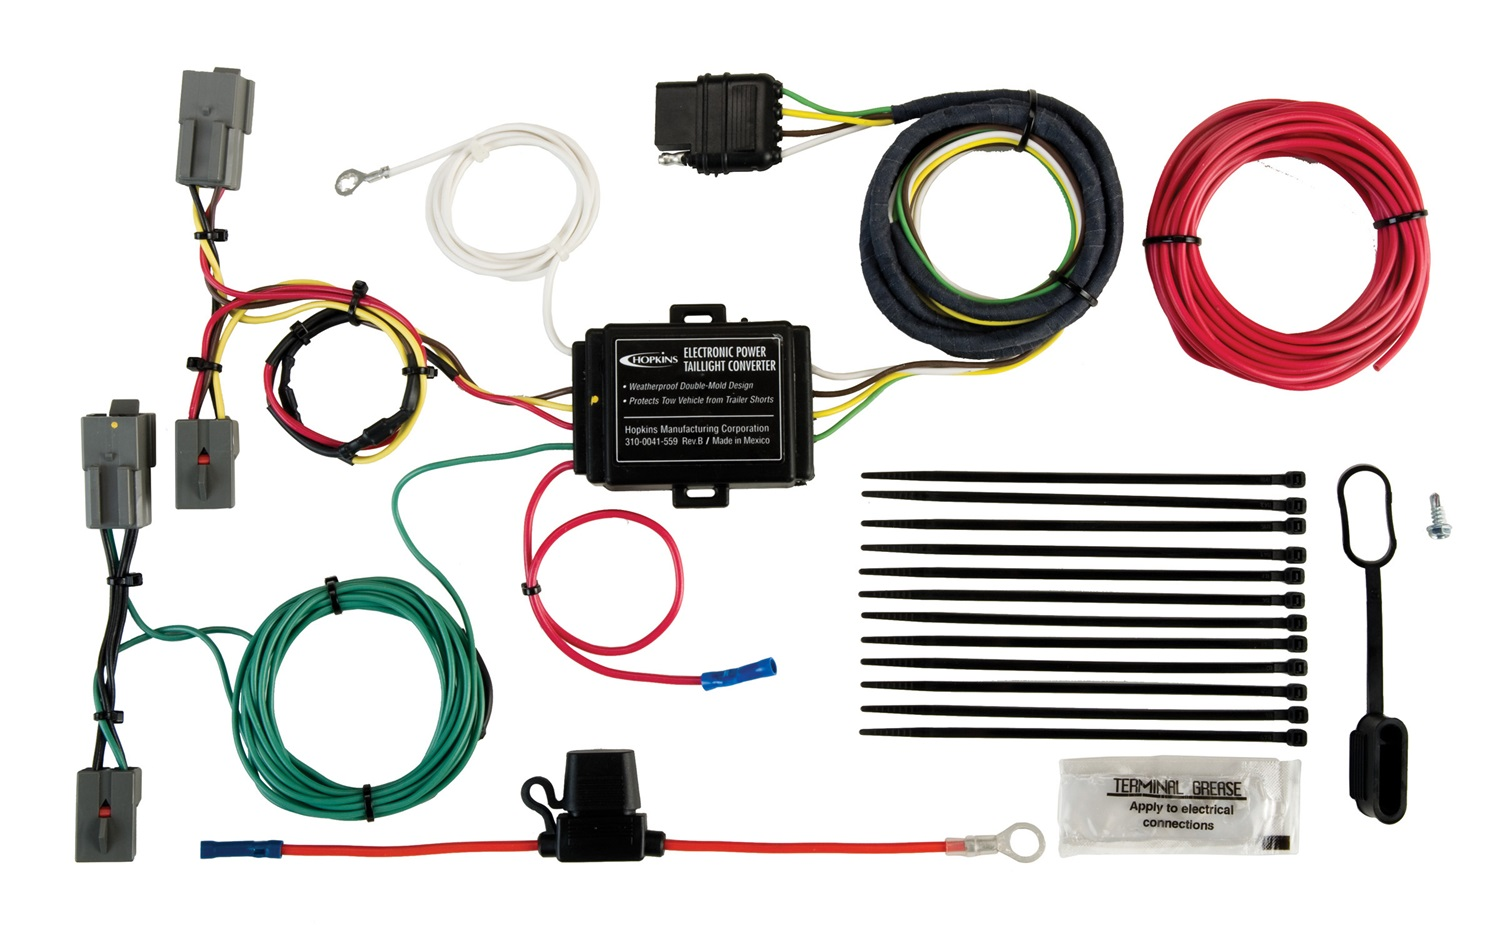 small resolution of hopkins towing solution 11140504 plug in simple vehicle to trailer wiring harness incl short proof power converter trailer wiring harness plug in